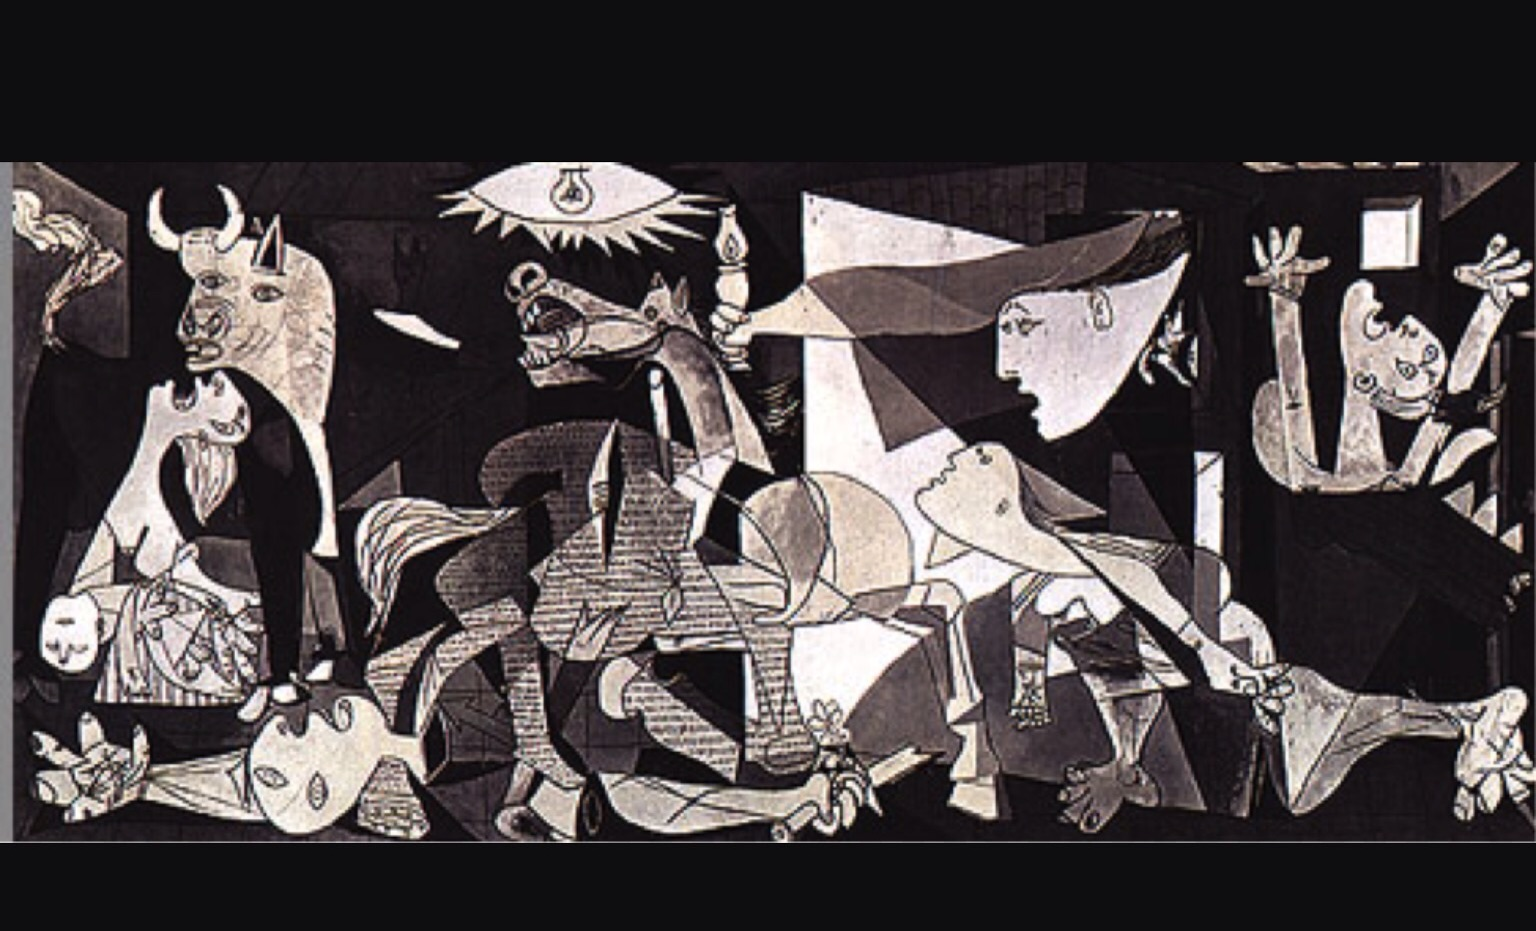 "The visit was especially to see this historical large mural, ""Guernica"", by Picasso.   In 1937, a northern Basque Spanish town  - Guernica - was the site approved by the Spanish dictator, Franco, for Hitler's Air Force to test the world's first saturation bombing raid on civilians.  Picasso was in Paris when he received news of the bombing and immediately went to work sketching and painting what he imagined the destruction to be.  In a few weeks he put together the 286 square foot mural.  On the left a woman holds her dead baby with her head raised in anguish, the bull represents Spain - usually strong but looking powerless - a man fallen from his horse with arm severed and sword broken, the horse screams, a woman drags herself along with wounded leg, a woman looks from a window trying to understand what is going on, another woman looks up to the horror of the skies.      The exhibition of the painting brought world attention to Spain's fascist rule and the destruction of modern war technology - Picasso vowed not to return to Spain while Franco ruled but Franco outlived him."